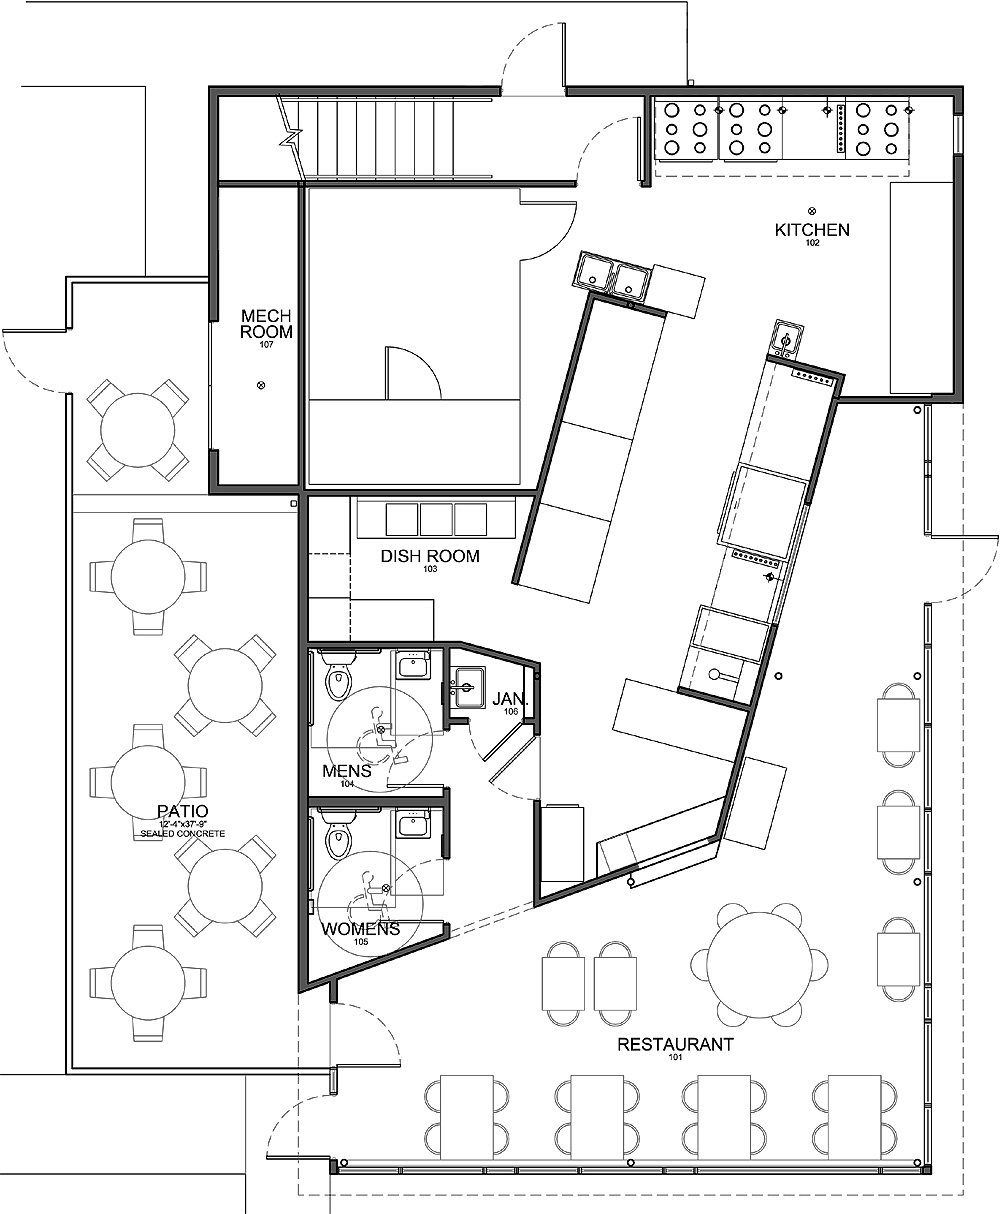 27 Shocking Restaurant Floor Plan Layout That Will Delight You Restaurant Floor Plan Layout Designing a restaurant floor plan involves more than rearranging tables Your...